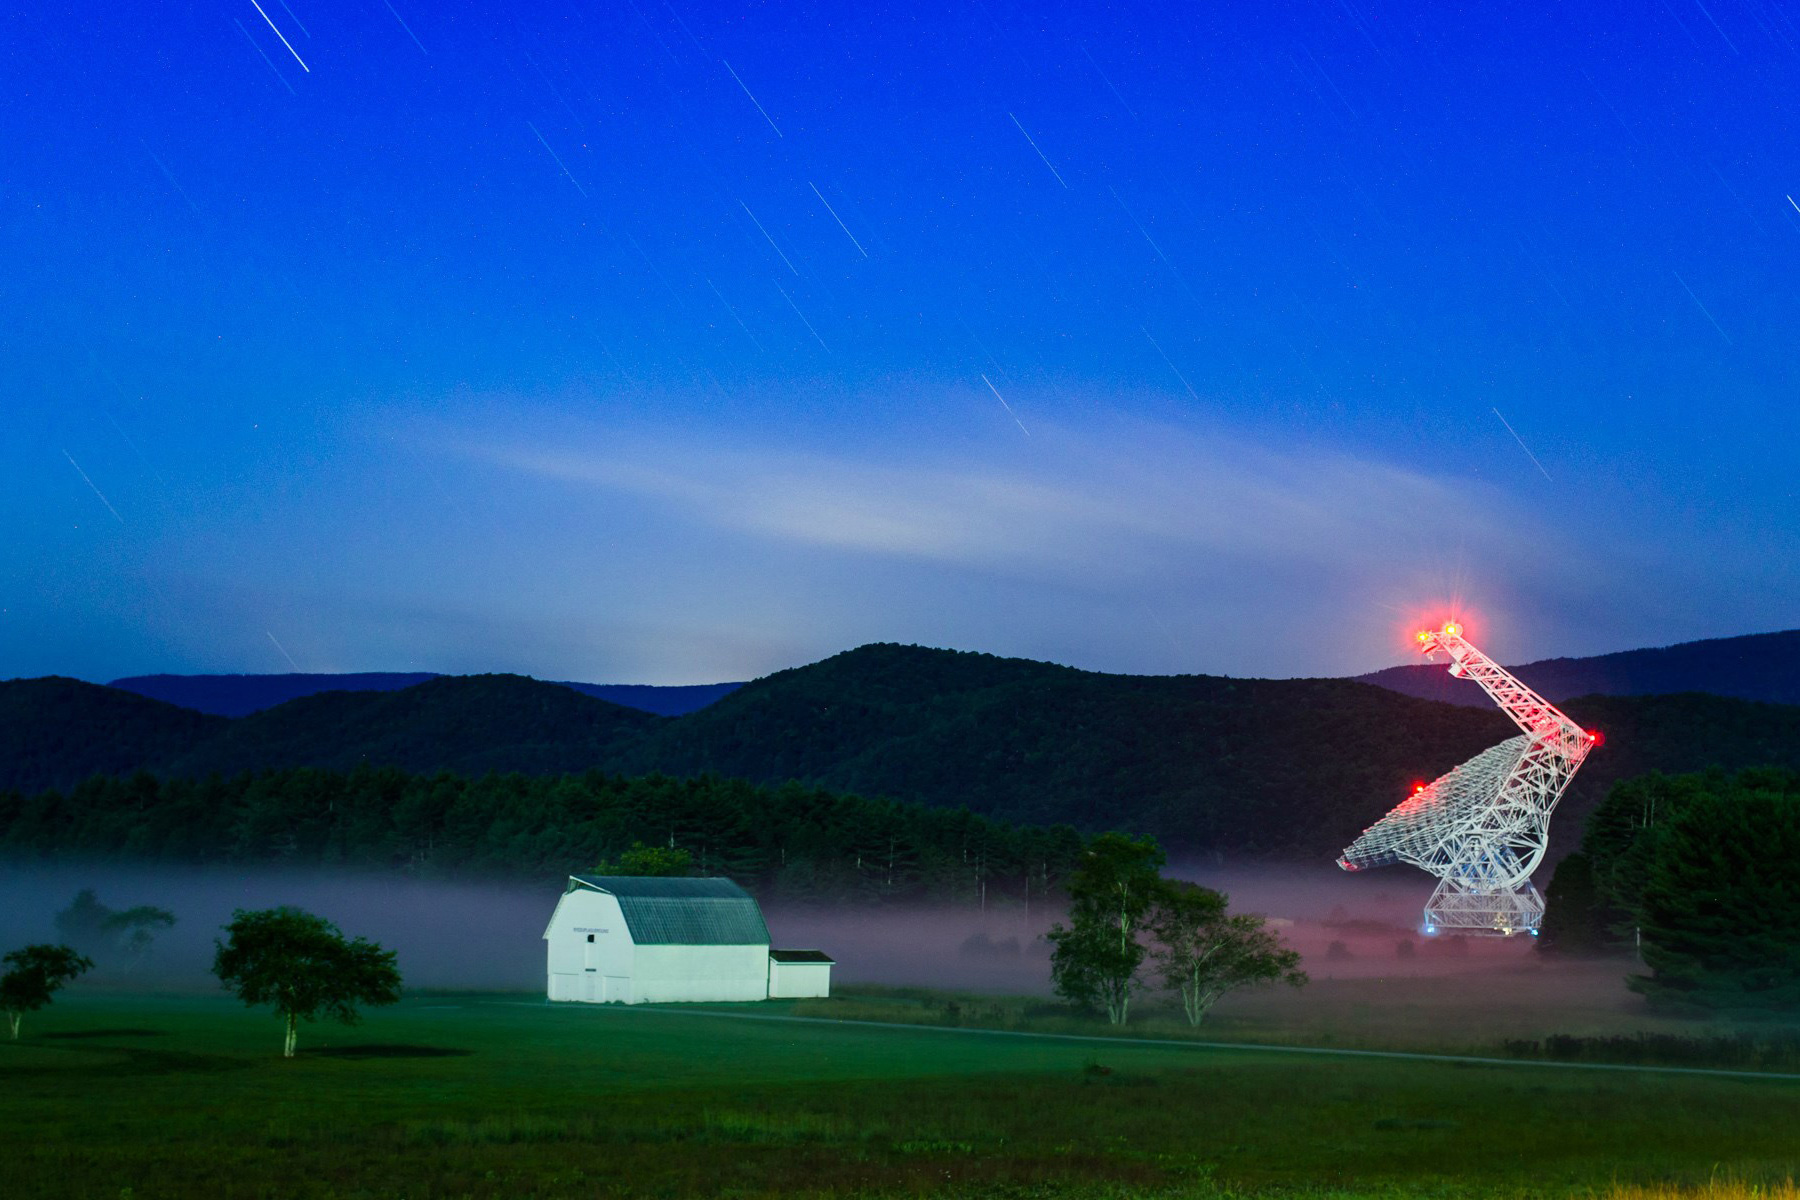 Photo with the Green Bank Telescope at right and a barnhouse at left, set in front of green mountains and a blue sky